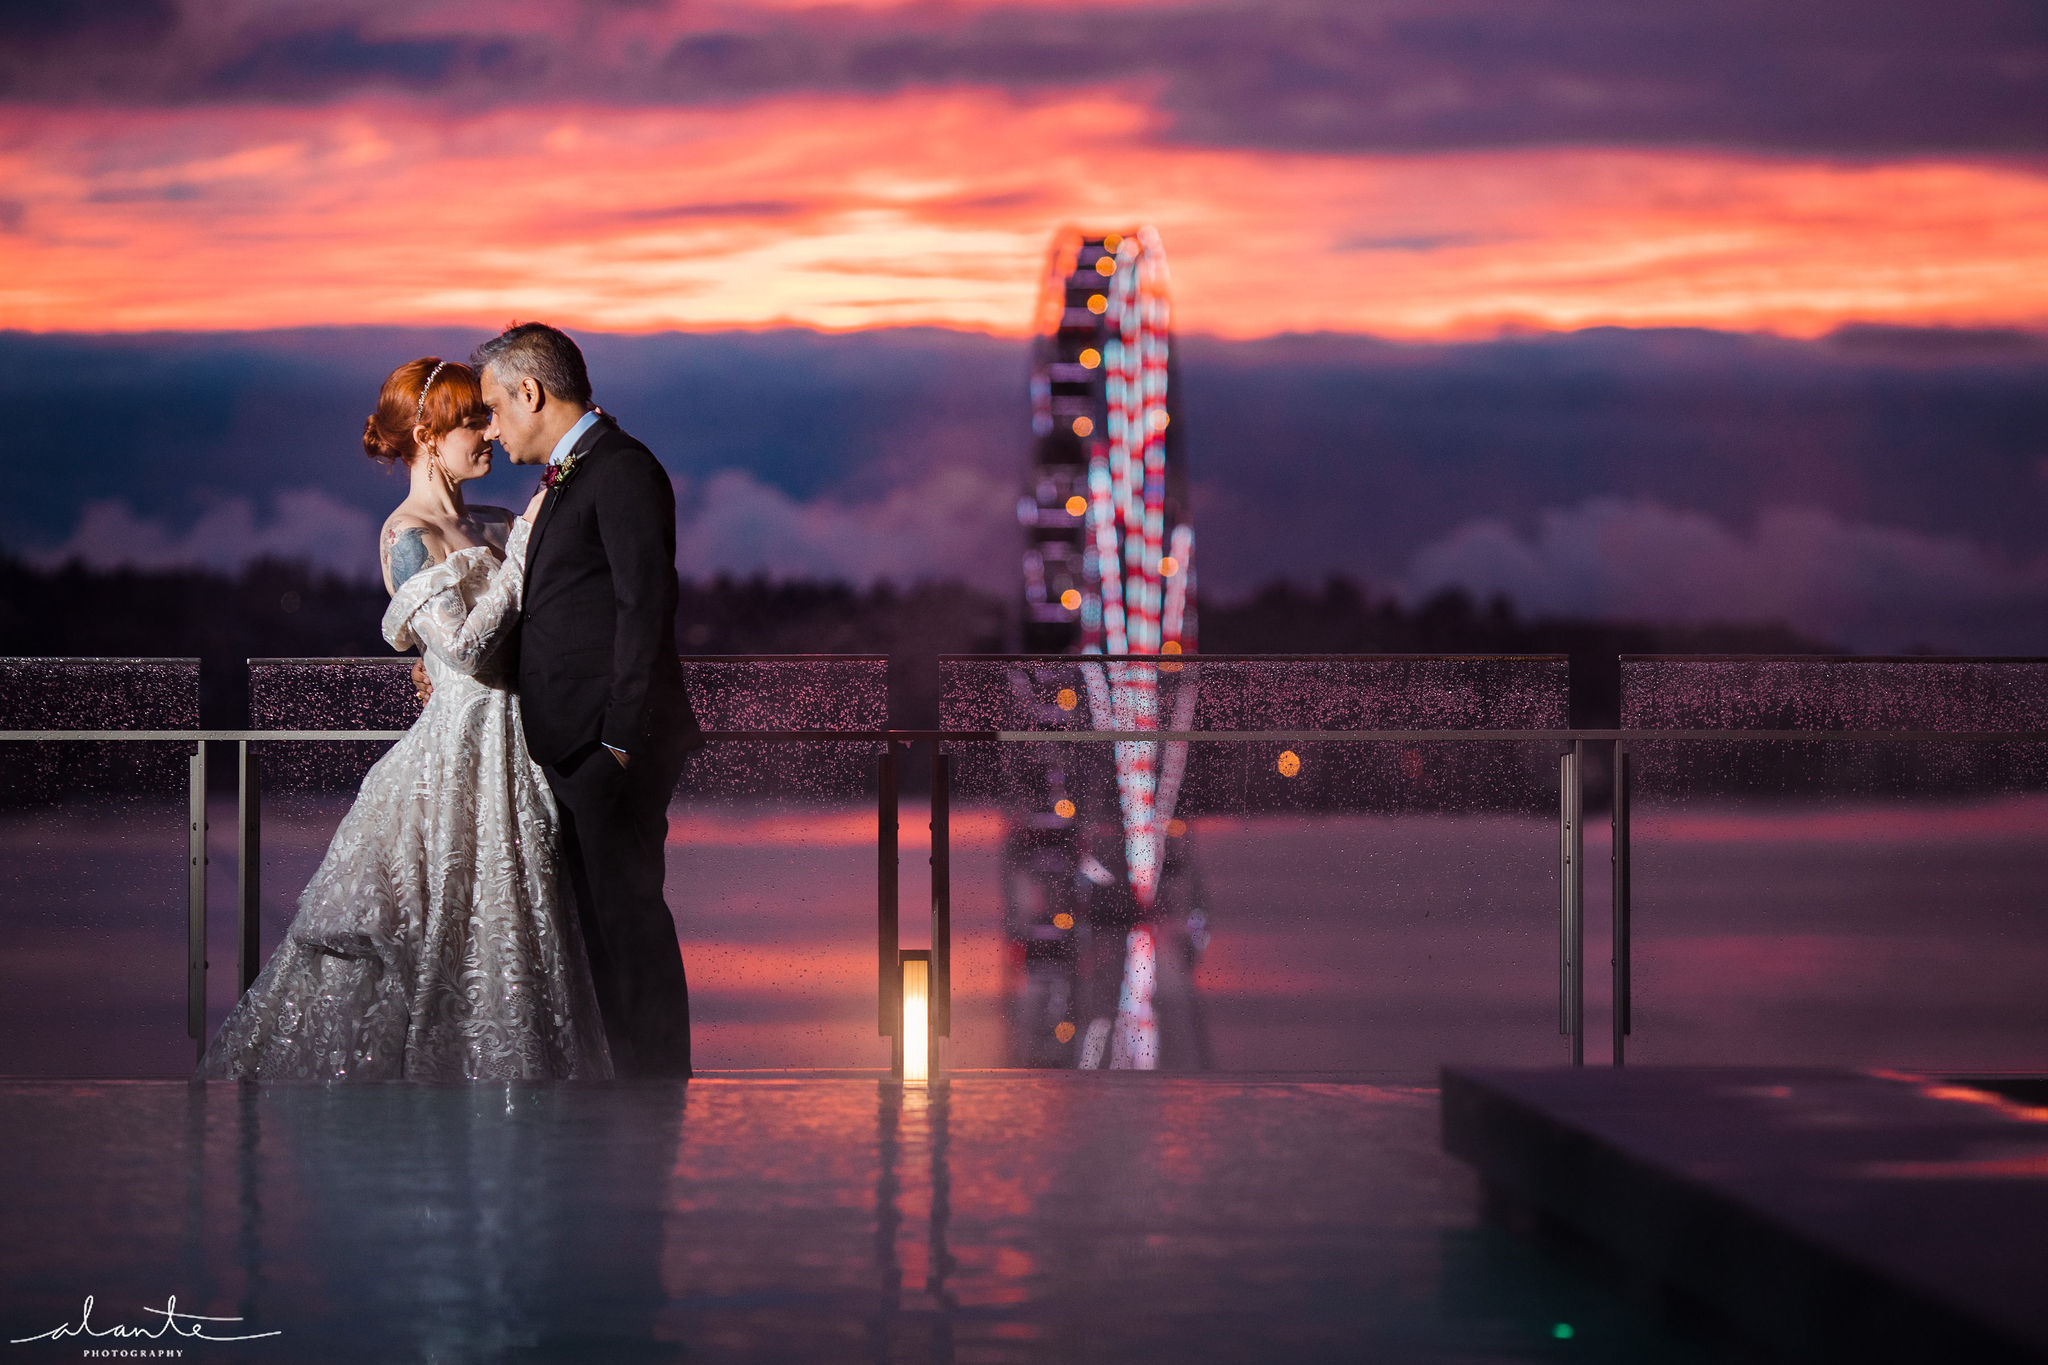 Bride and groom in front of the great ferris wheel Seattle at sunset.